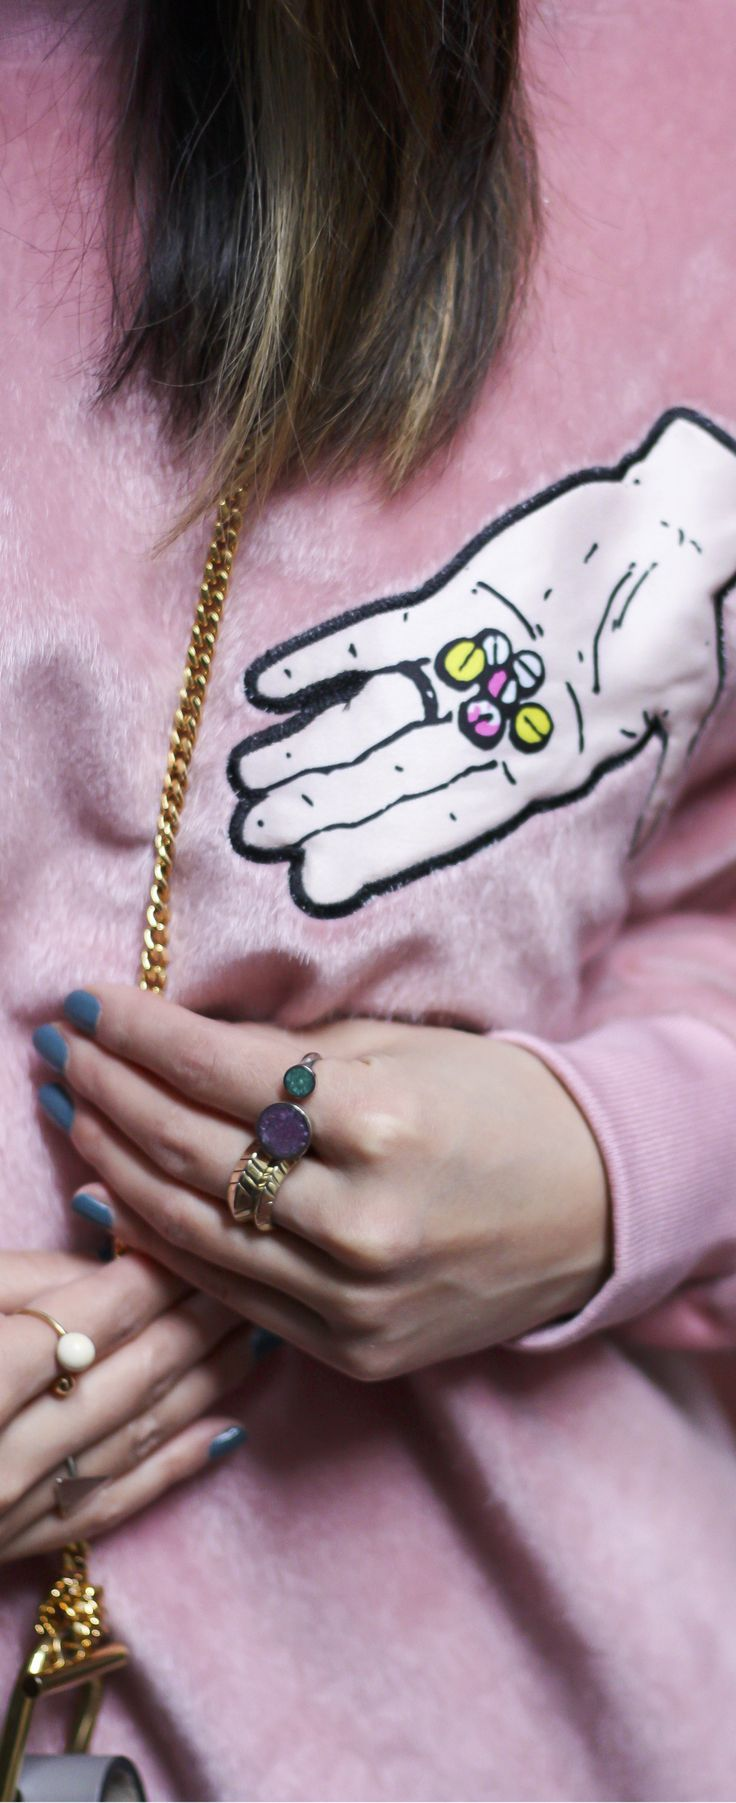 Embroidered pink sweatshirt, cool pink sweatshirt, cool pink outfit. See the full look on www.layersofchic.com